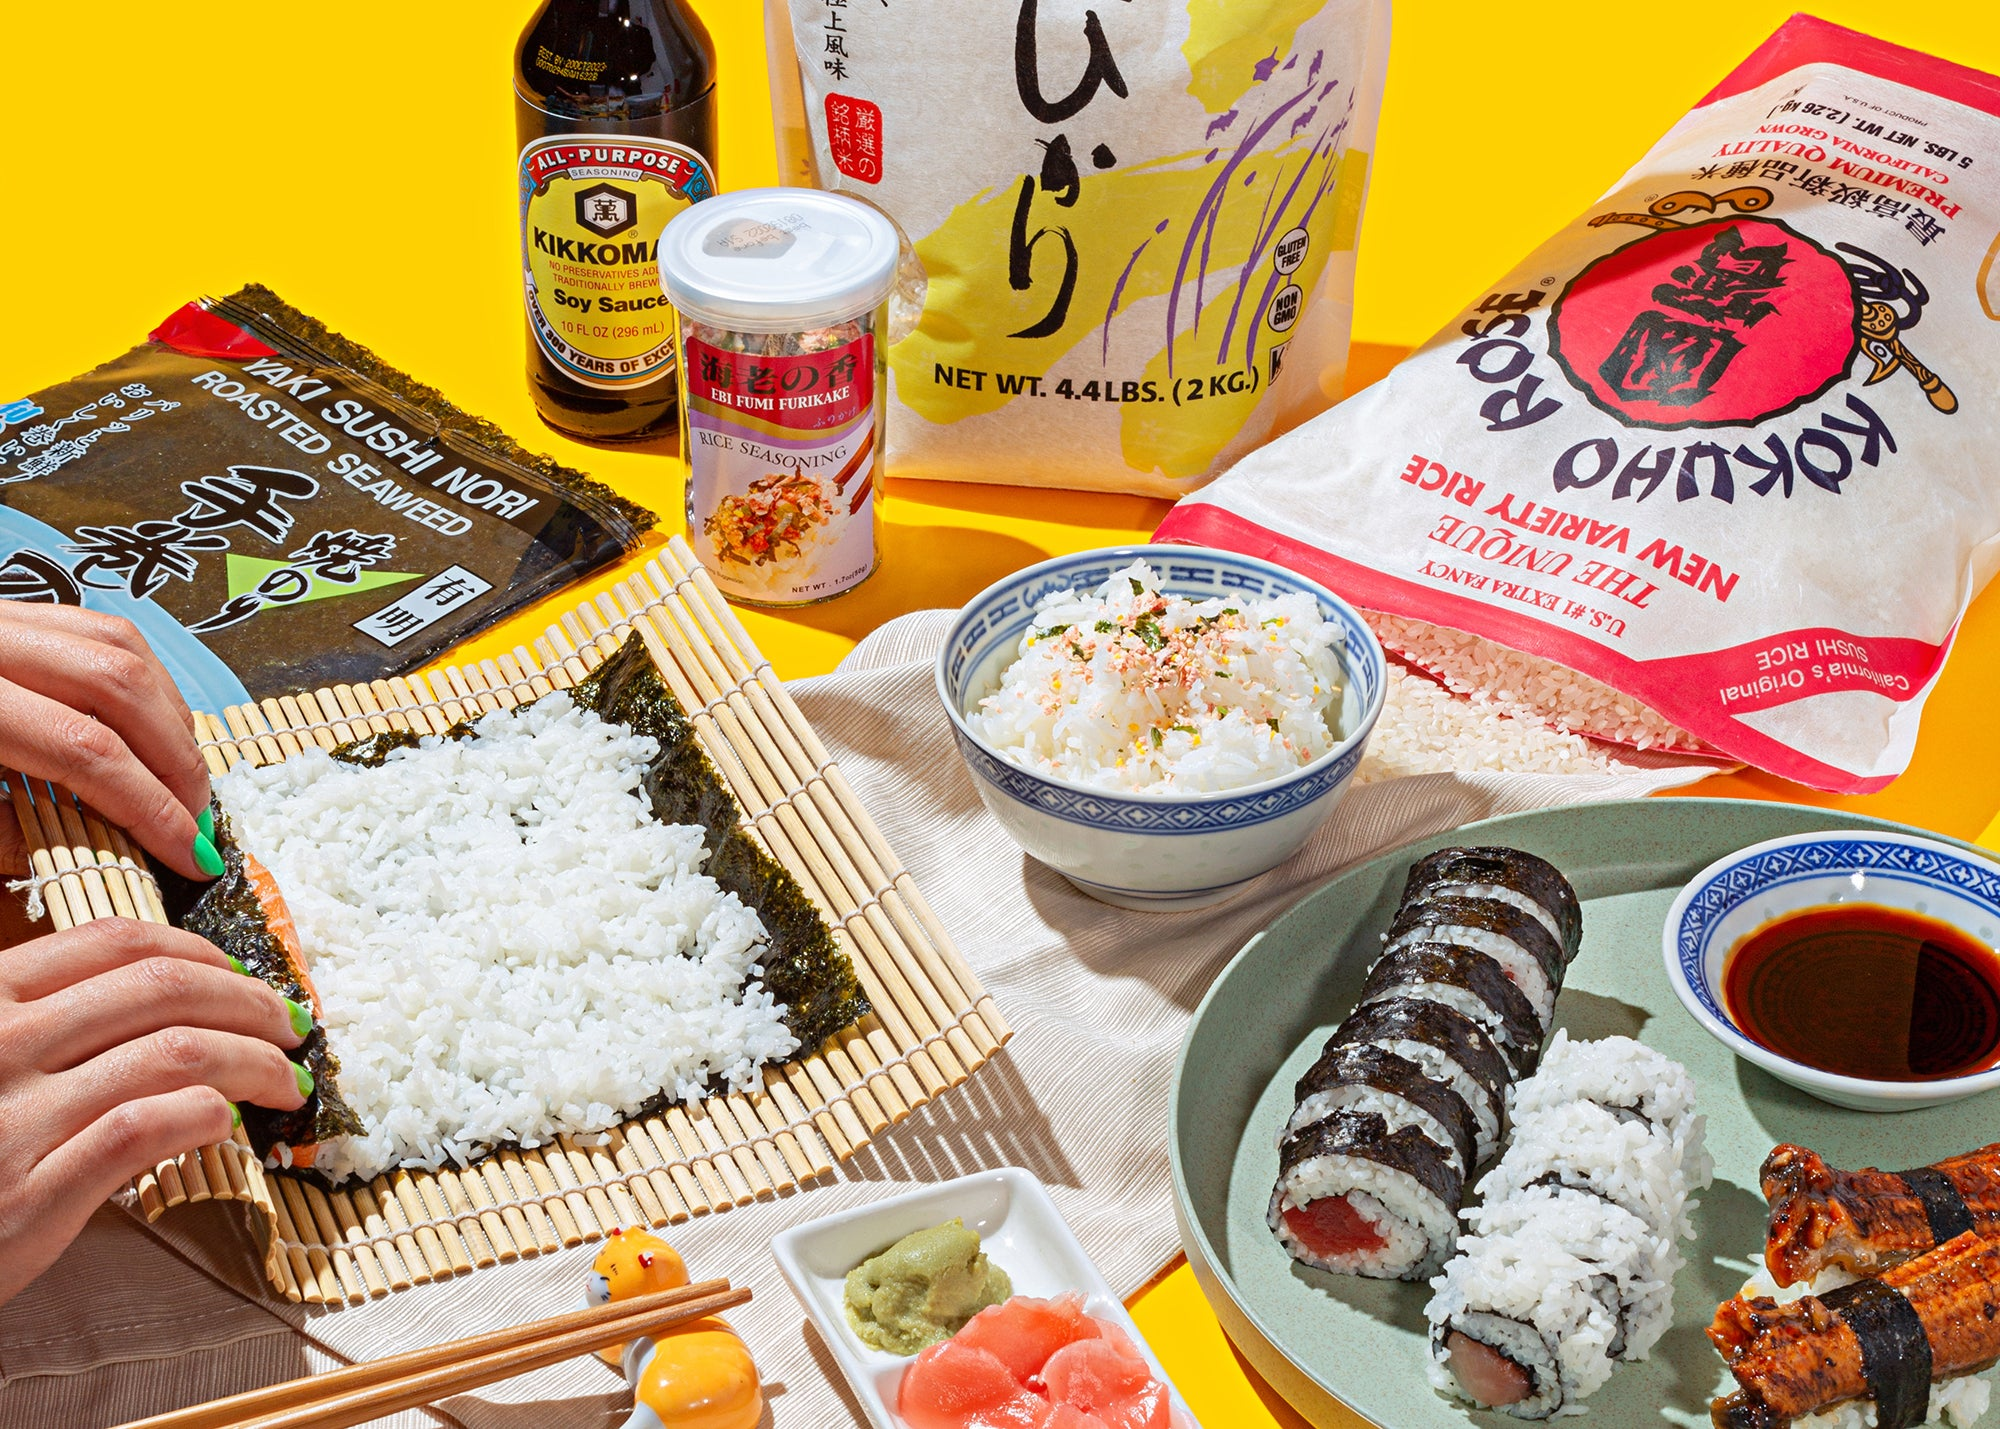 Spread of ingredients from Umamicart